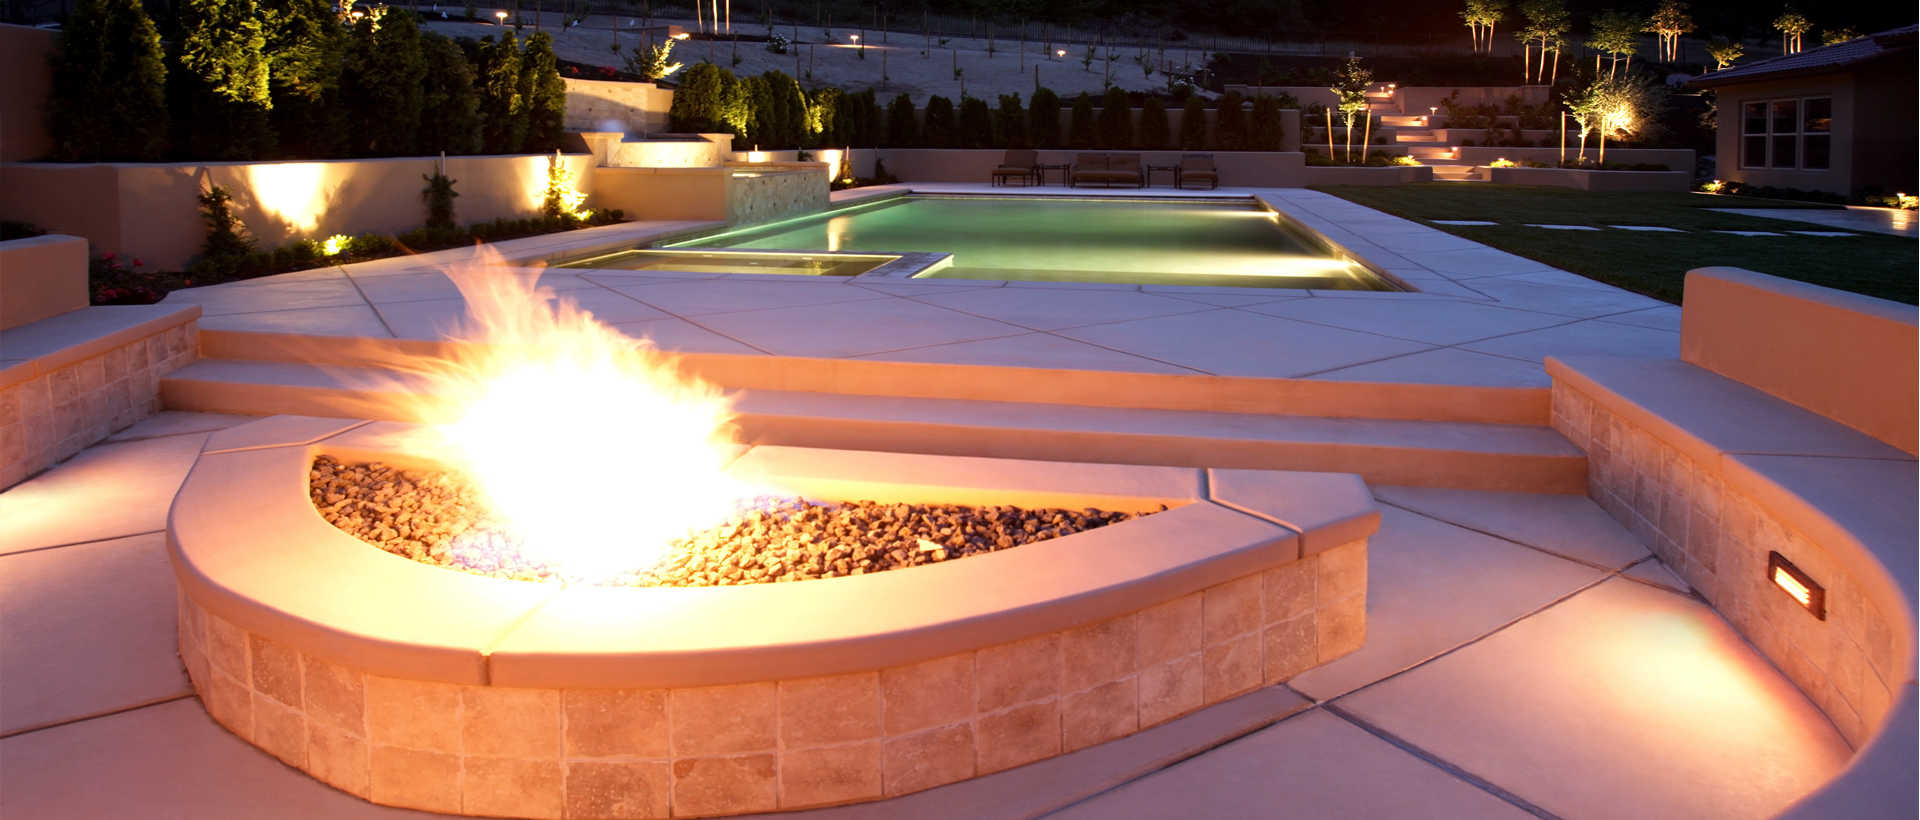 outdoor-fire-pit-pool-and-landscaping-SLIDE-opt